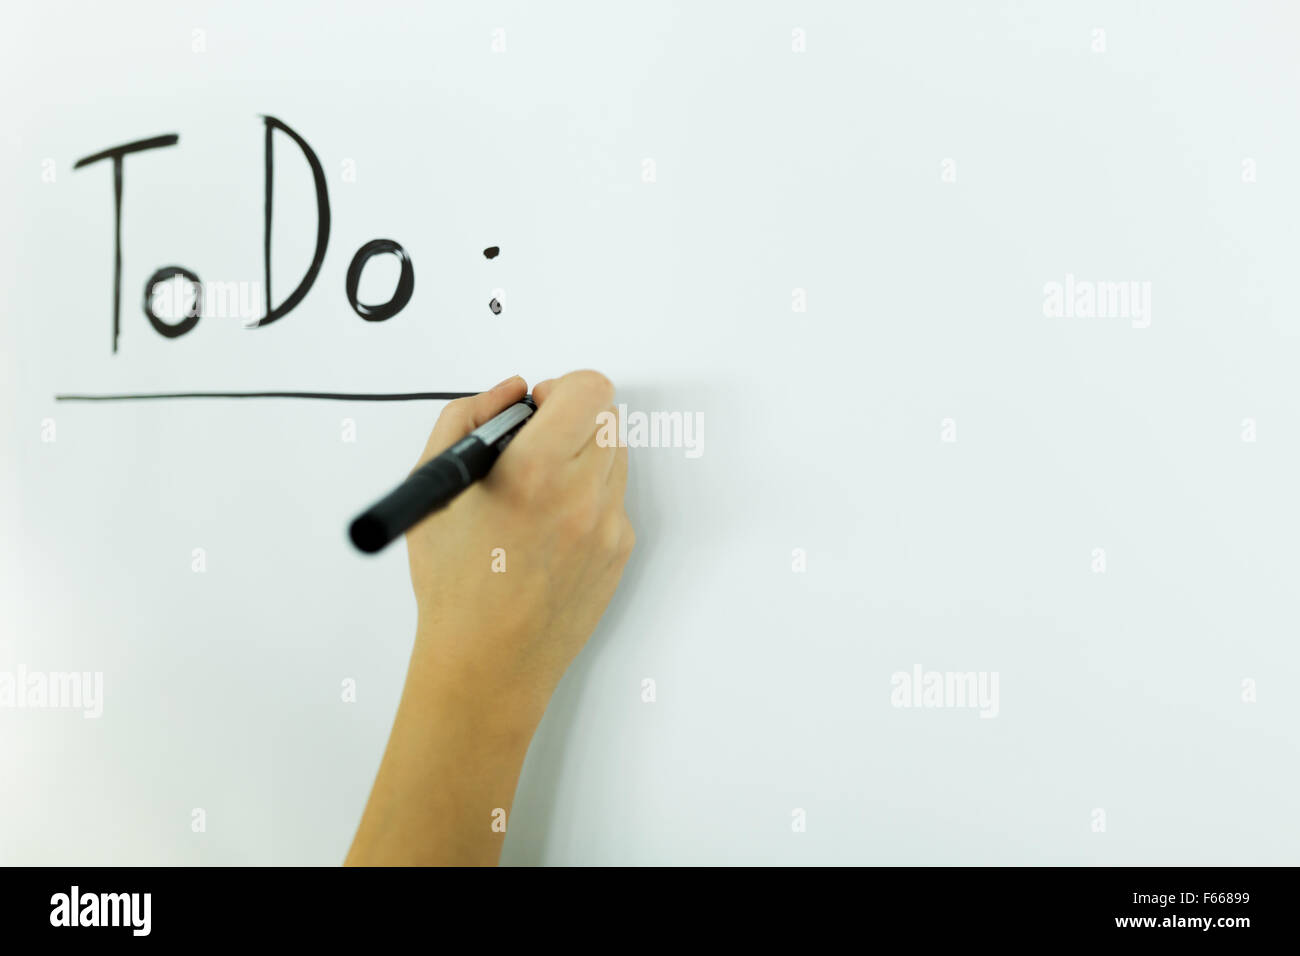 writing todo onto a white writing board - Stock Image